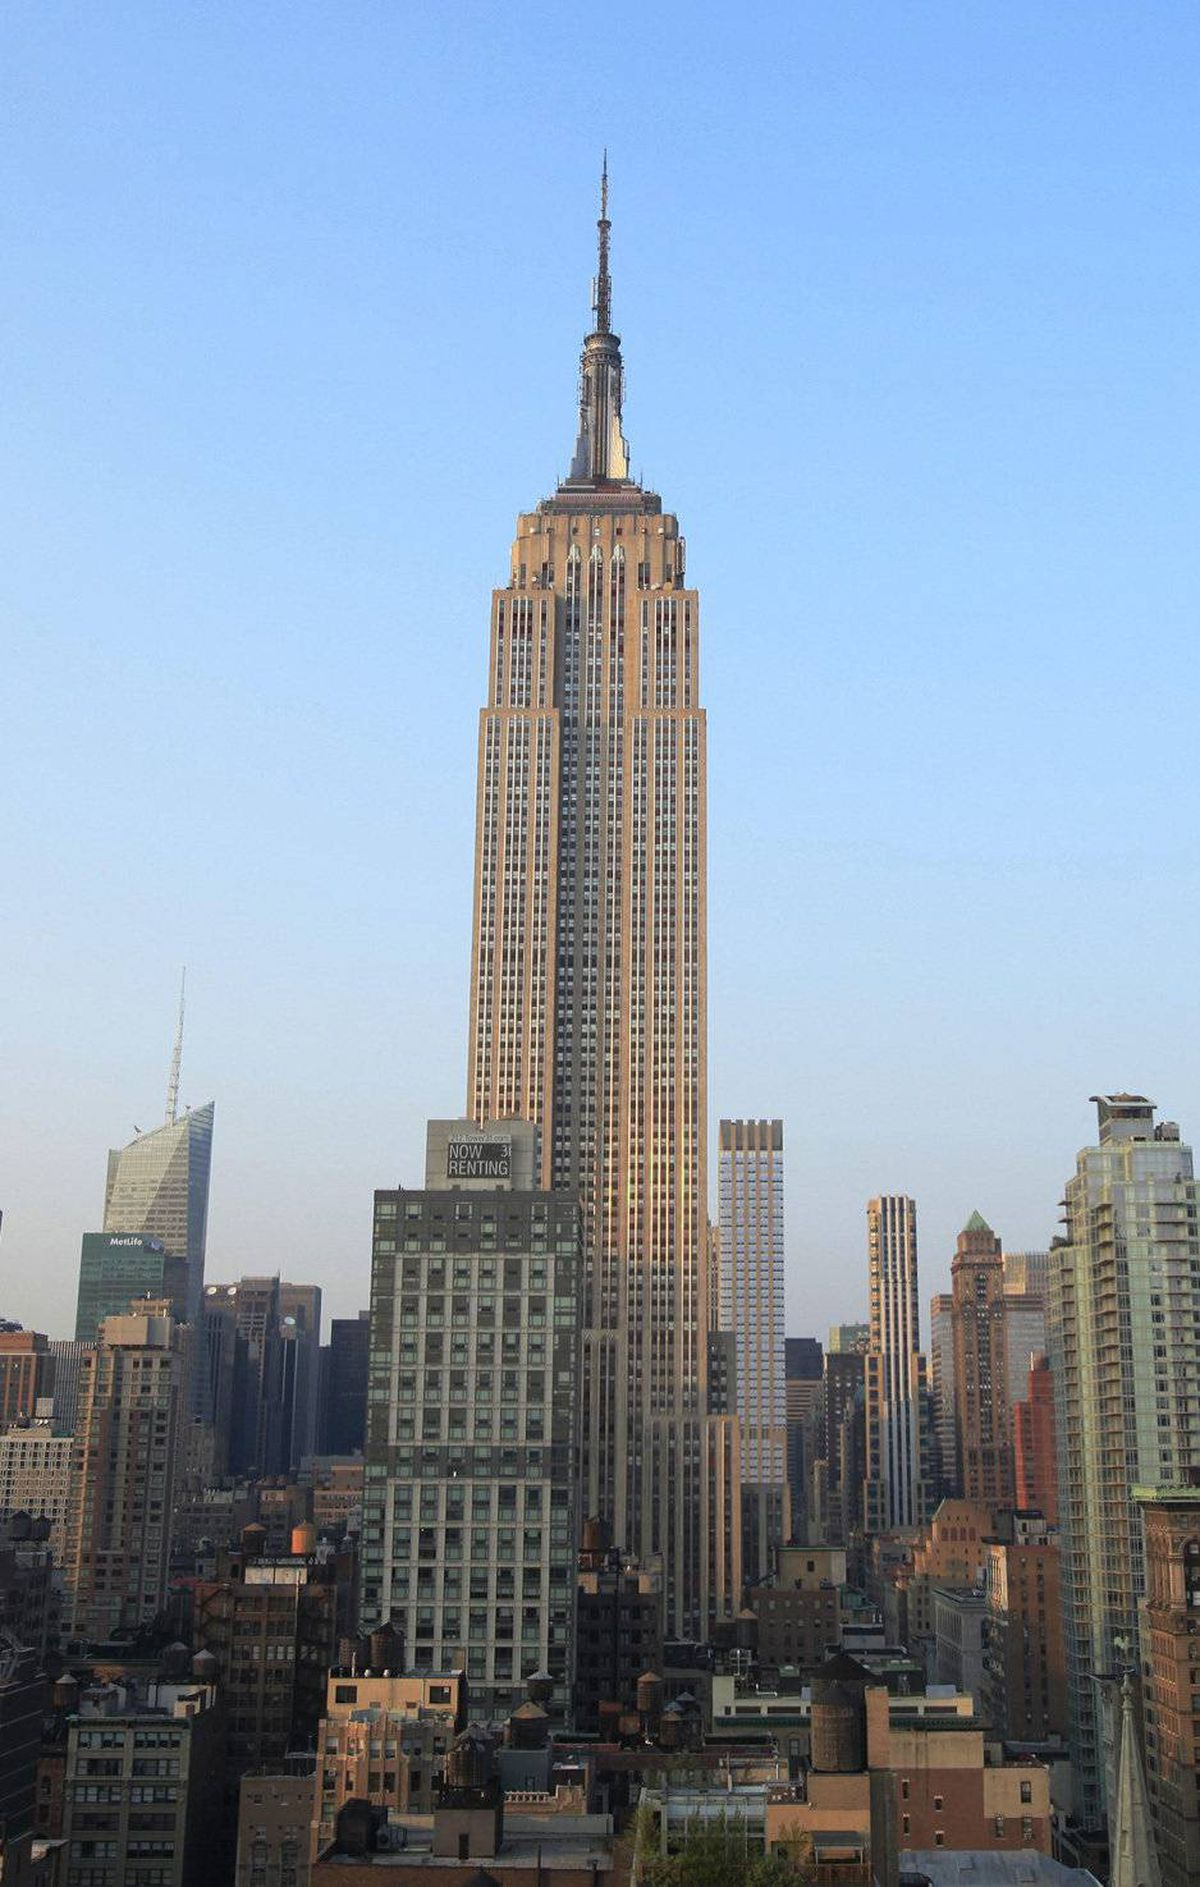 The Empire State Building stands above midtown New York Sept. 1, 2010.